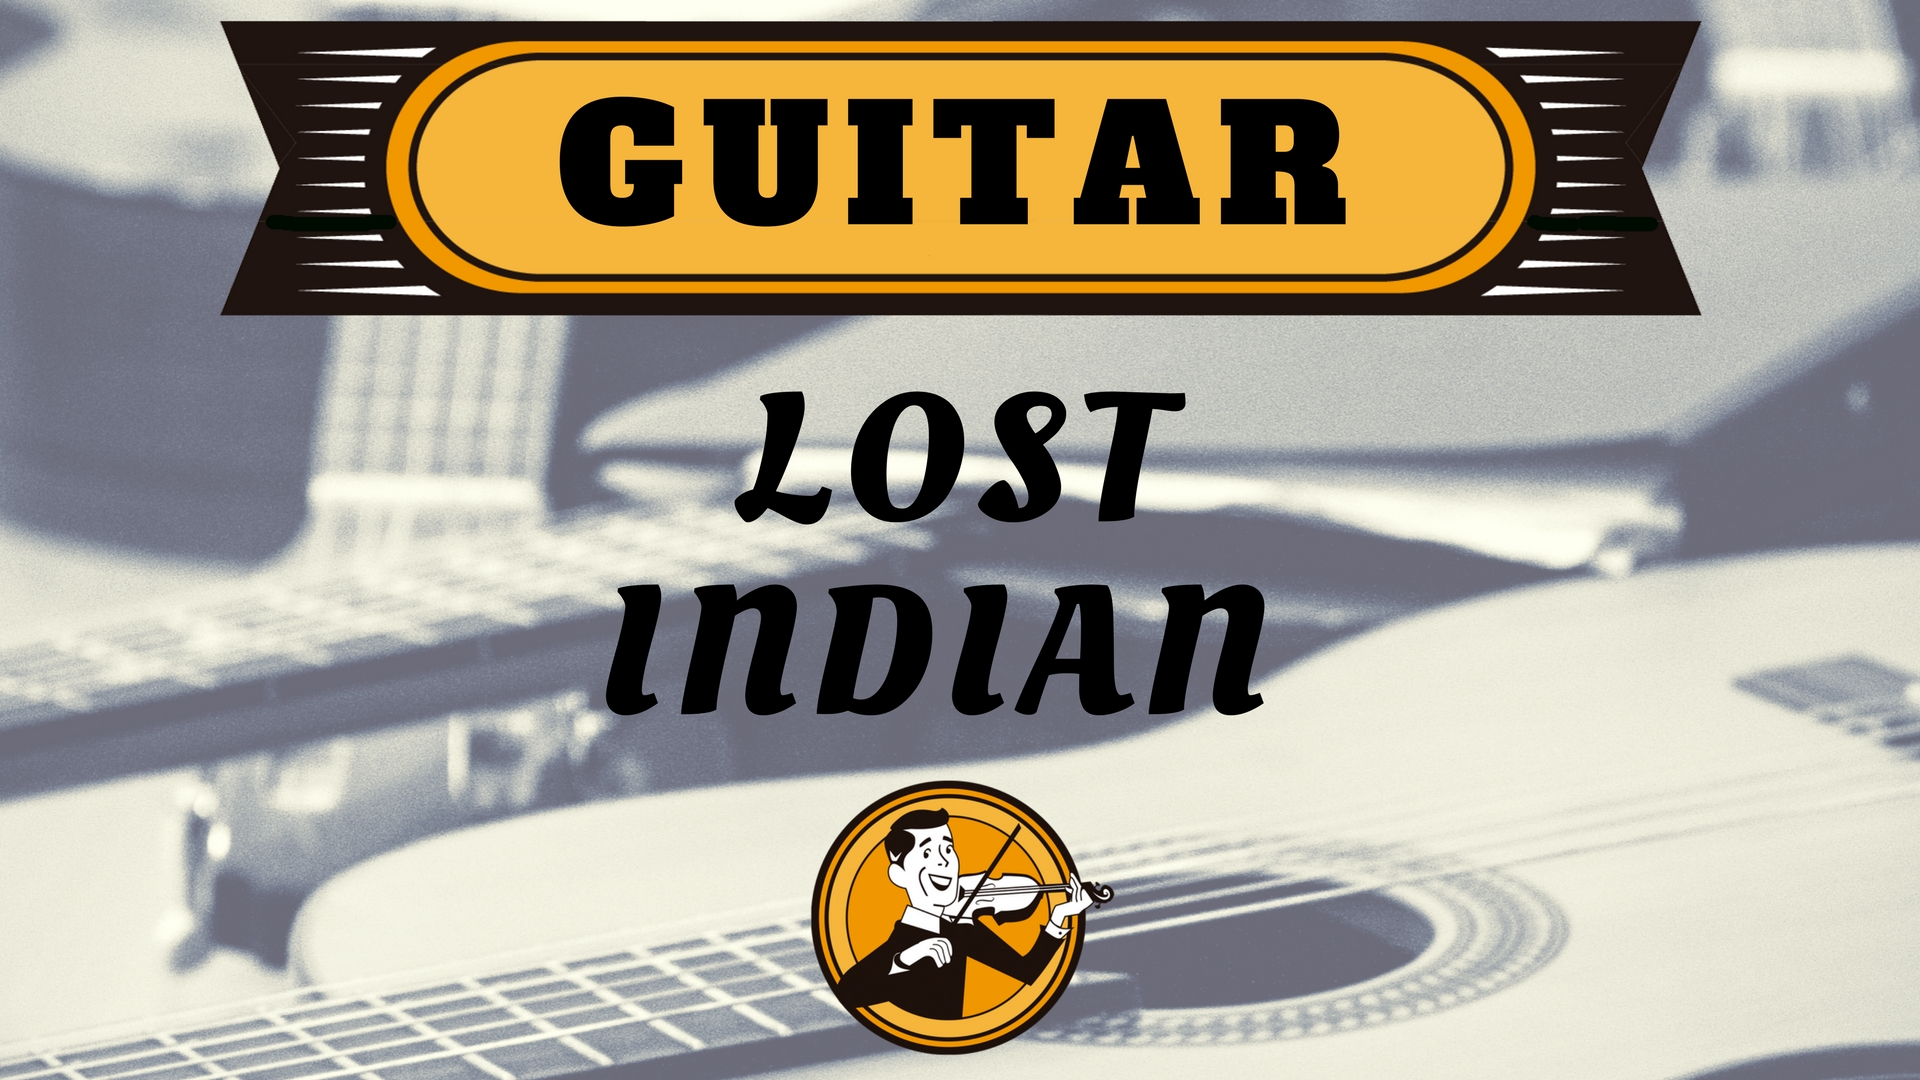 Guitar Lost Indian